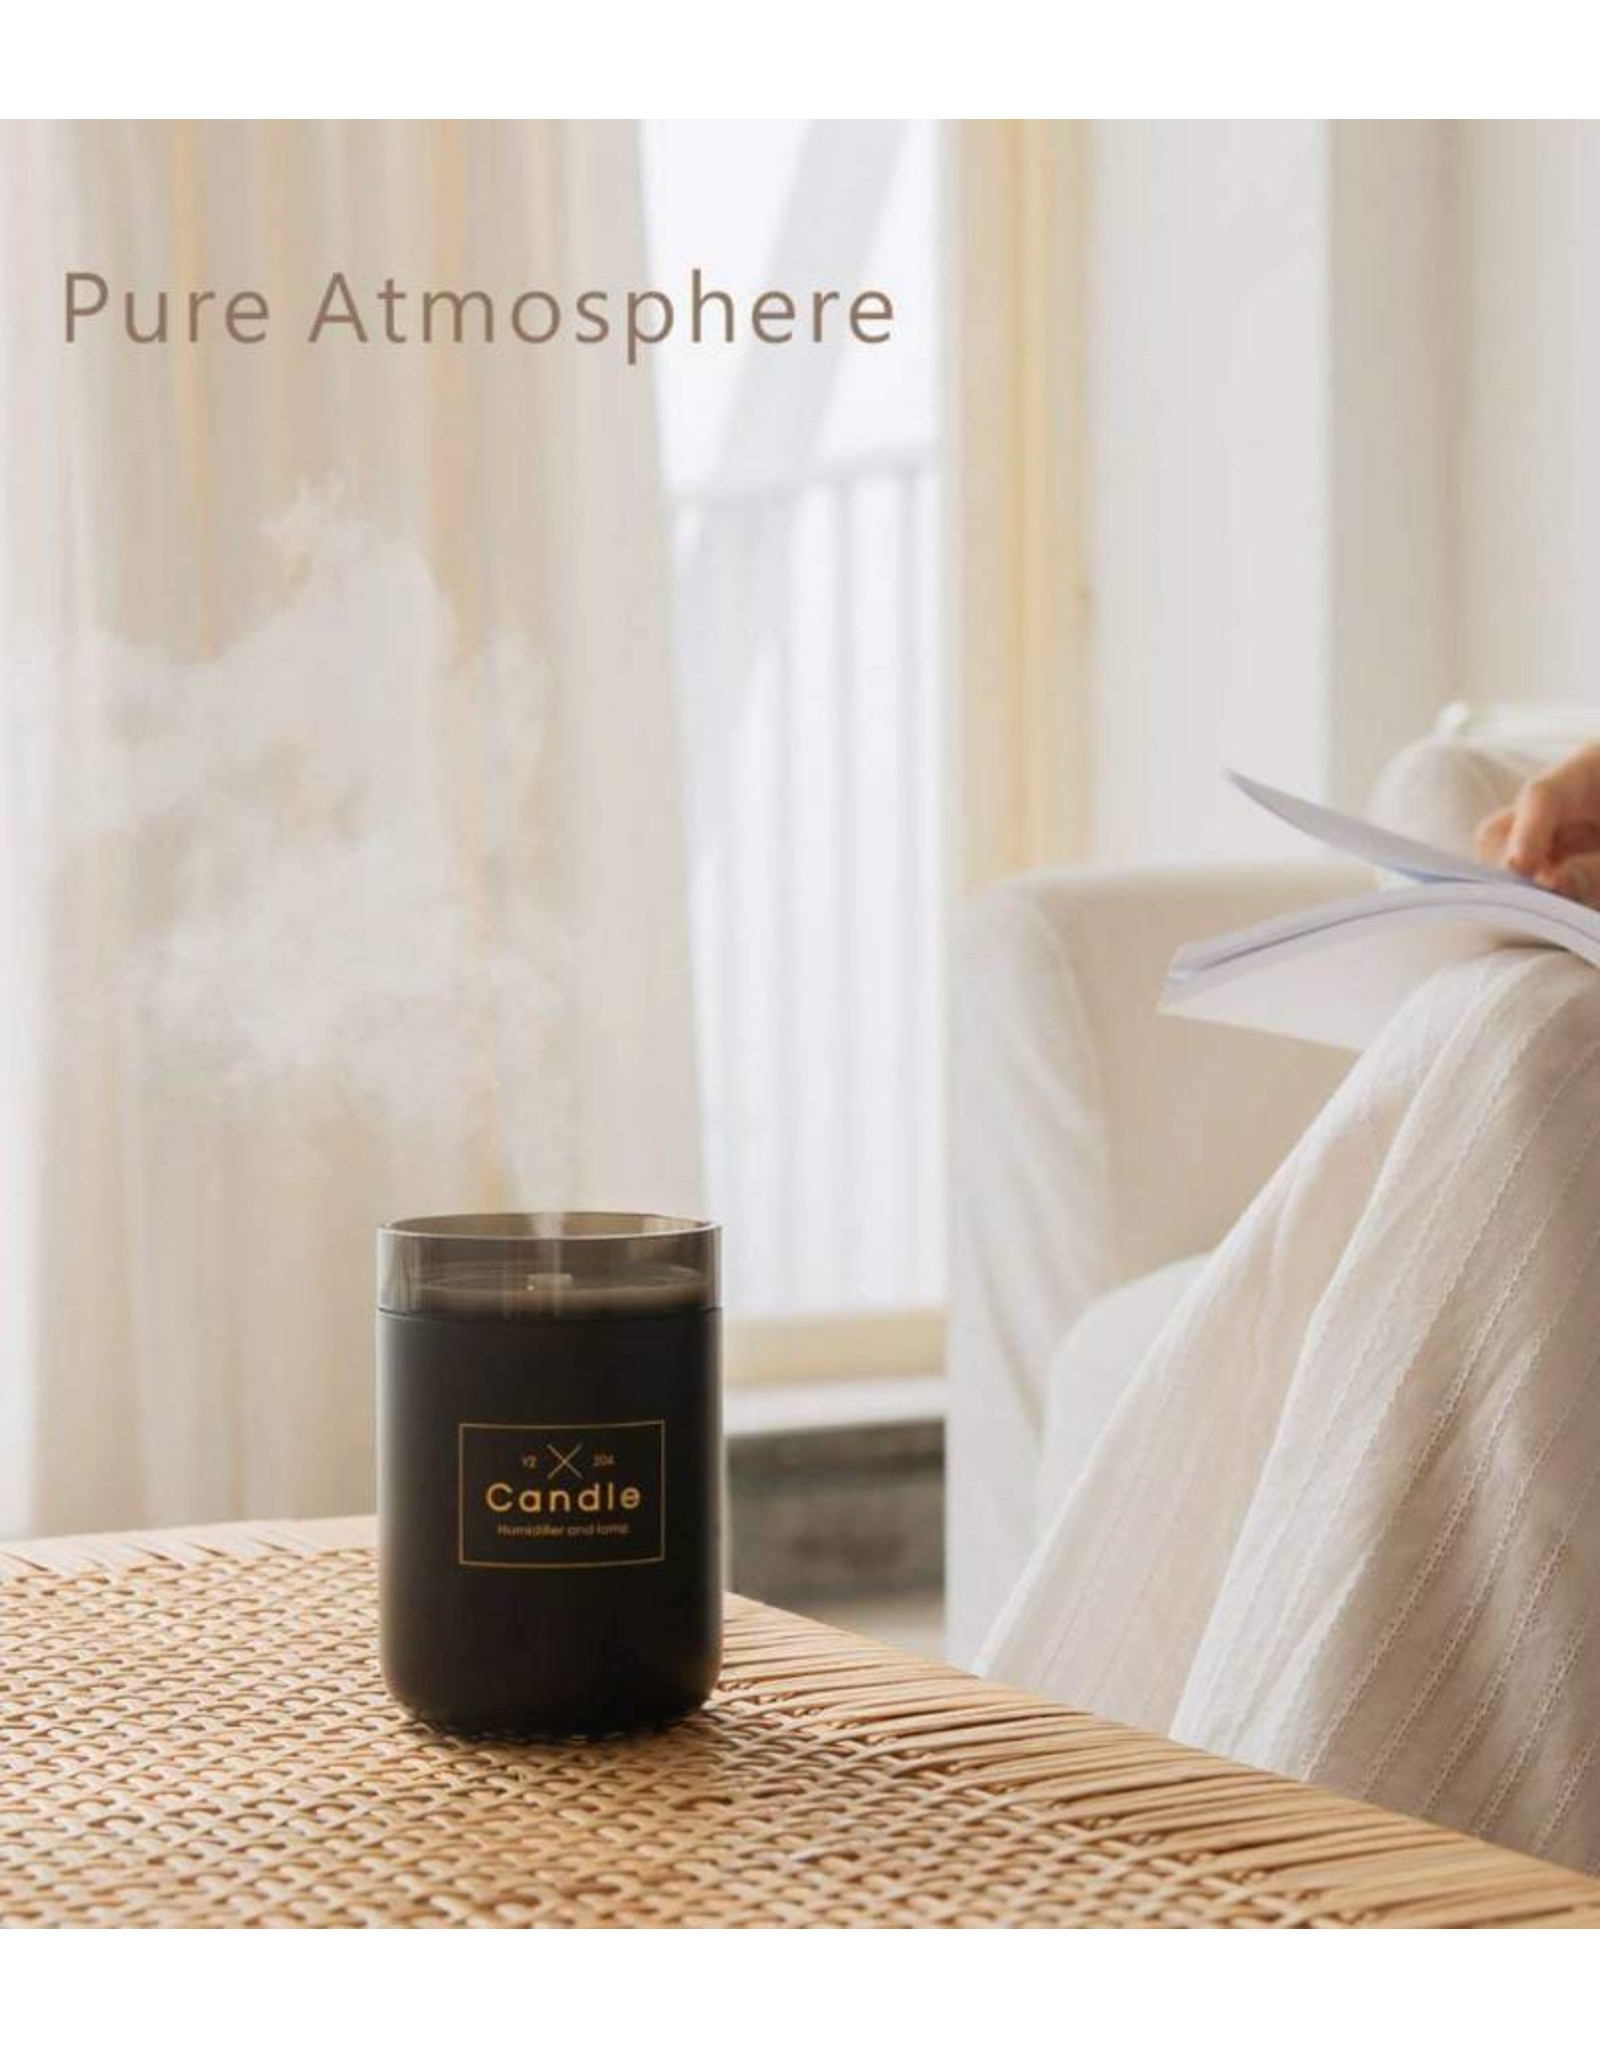 Parya Official Parya Official - Aroma Diffuser - Candle